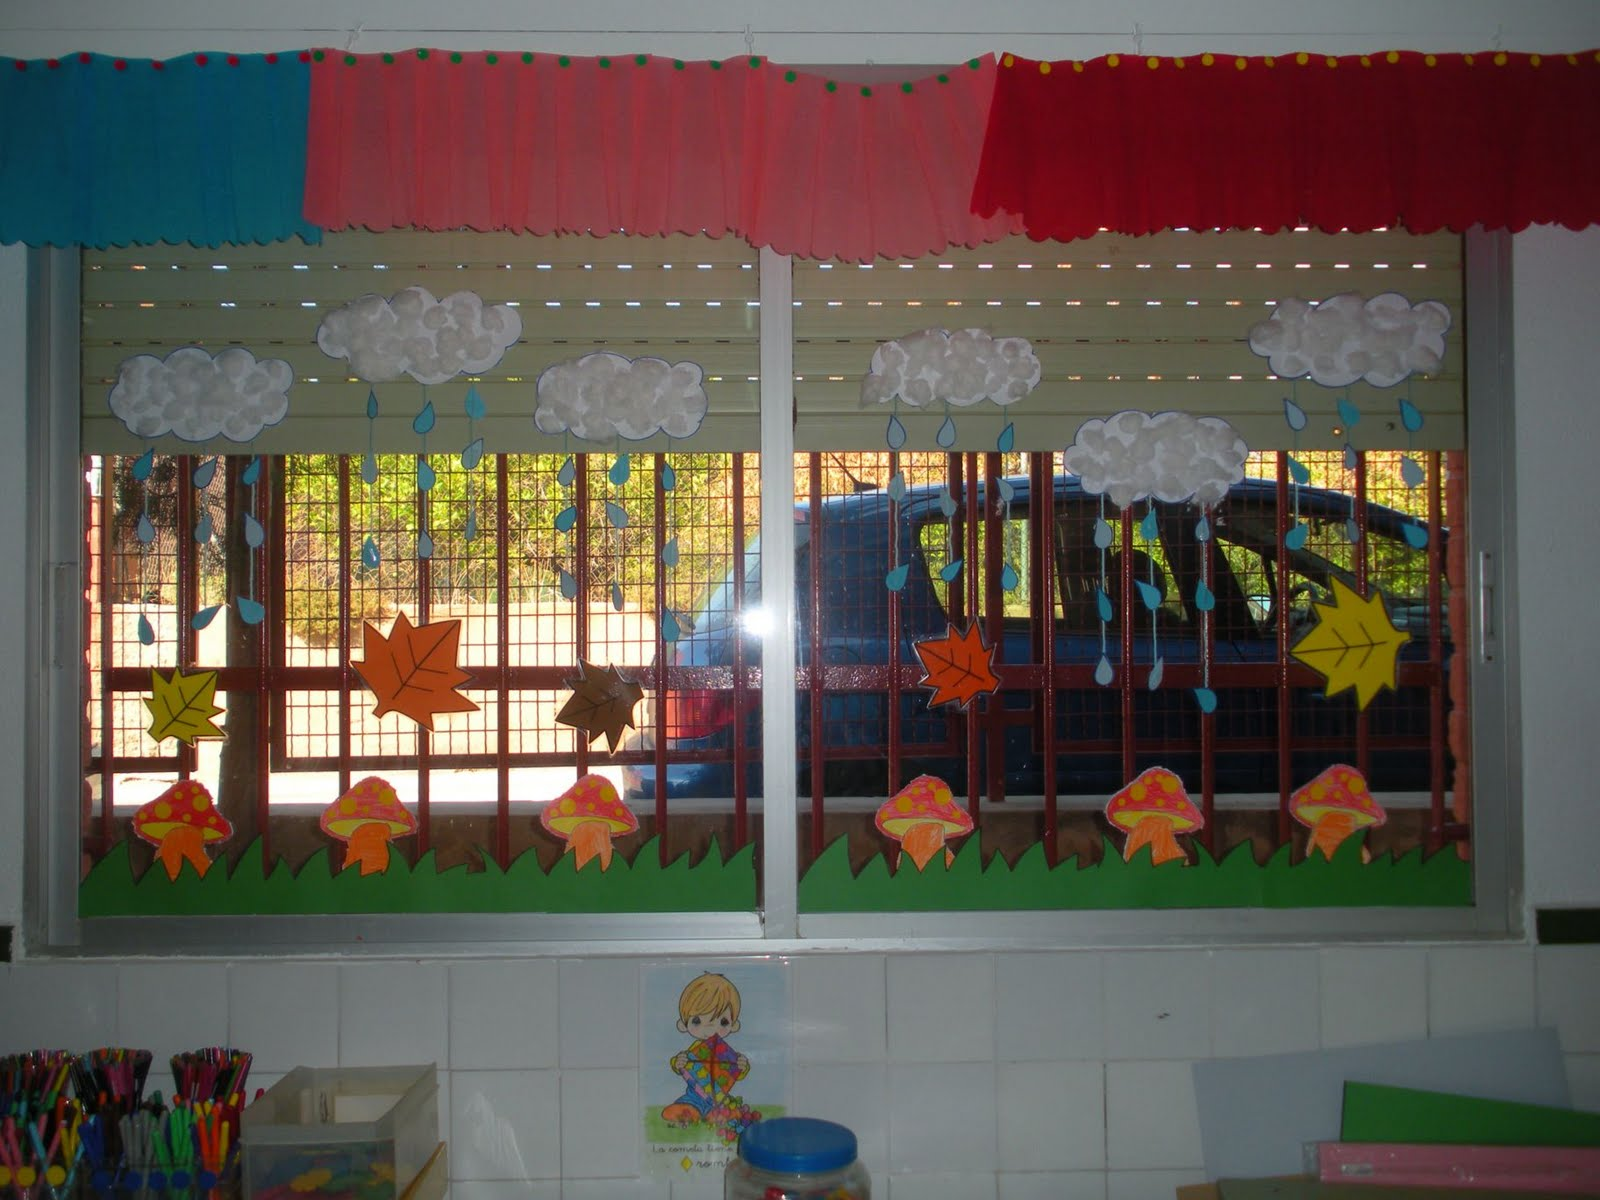 Perfecto decoraci n jardin infantil composici n ideas de for Decoracion para jardin infantil